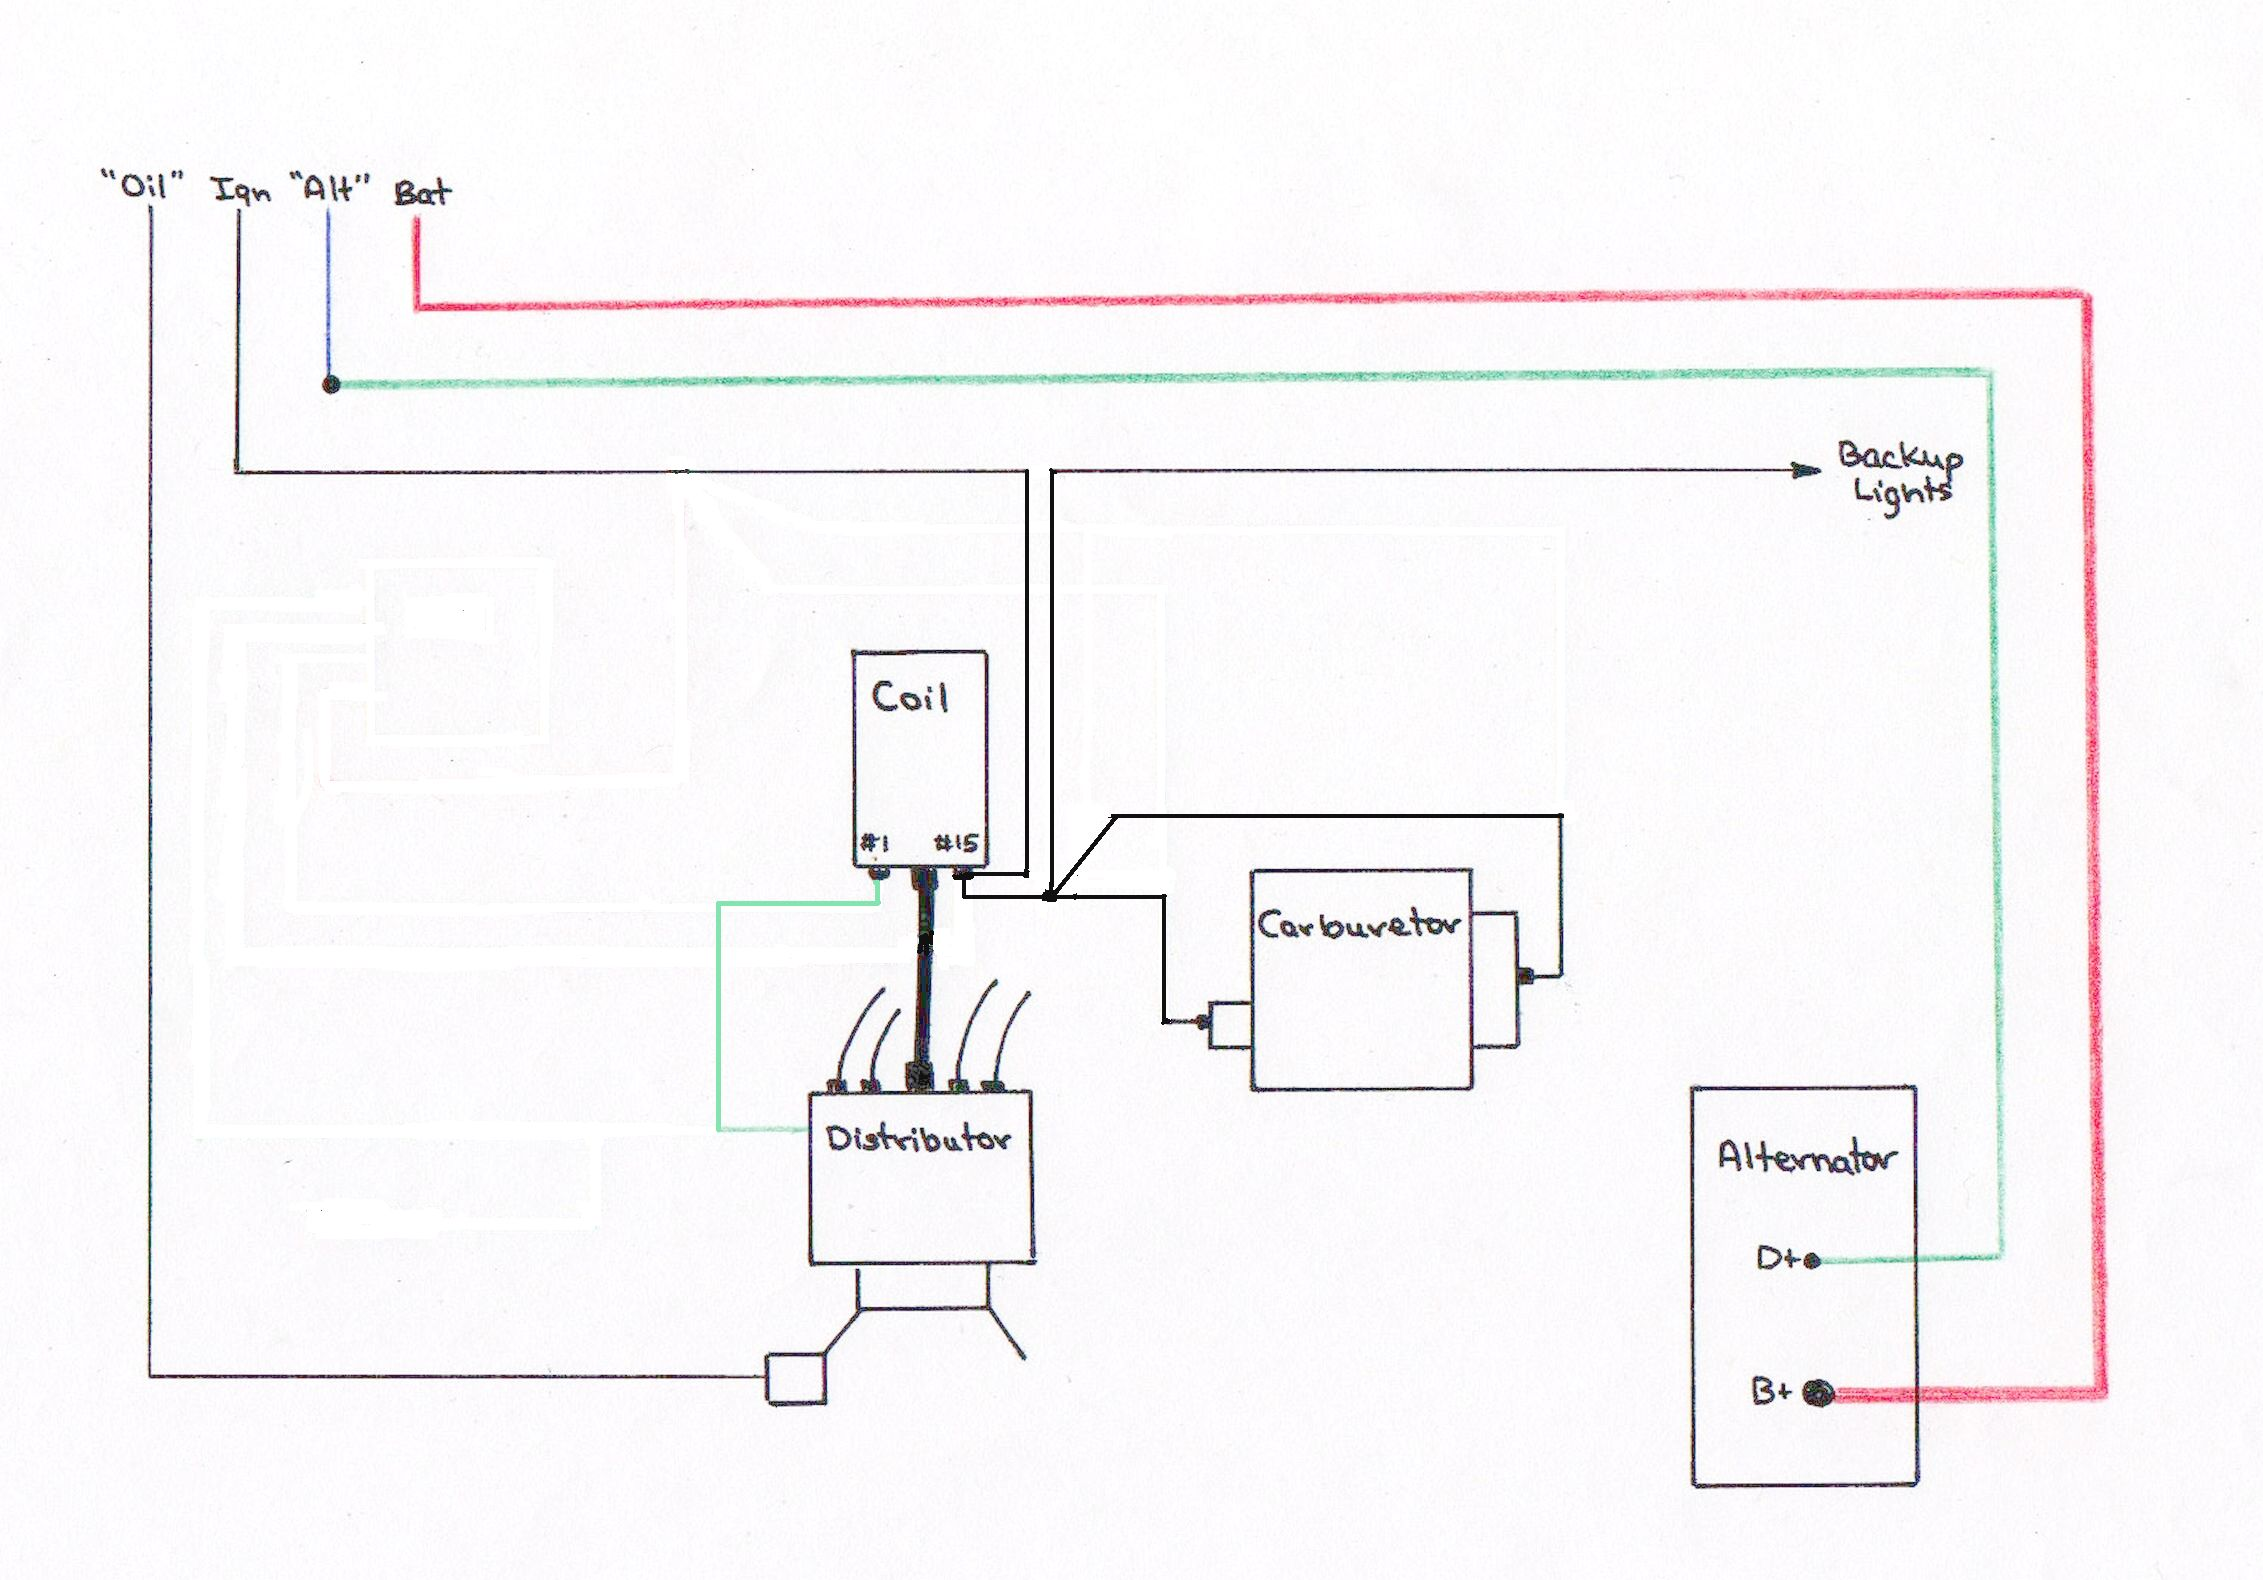 handdrawn_schematic alternator wiring wiring diagram for an alternator at soozxer.org